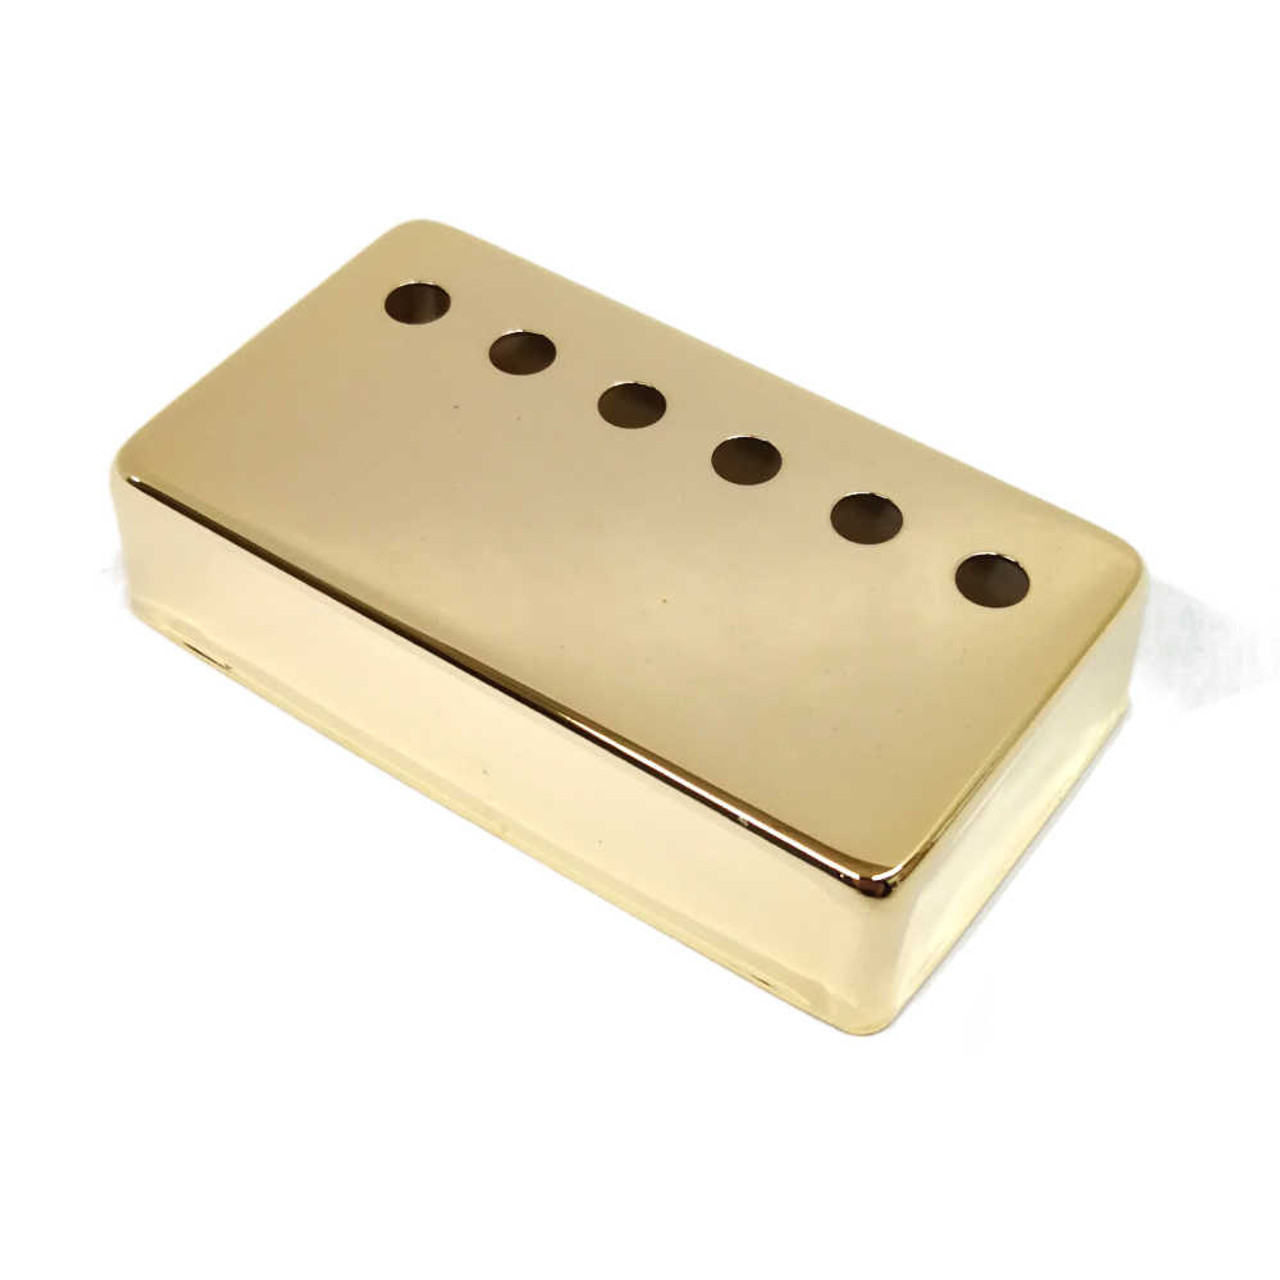 Humbucking Pickup Cover - 52mm Gold (plated nickel/silver)